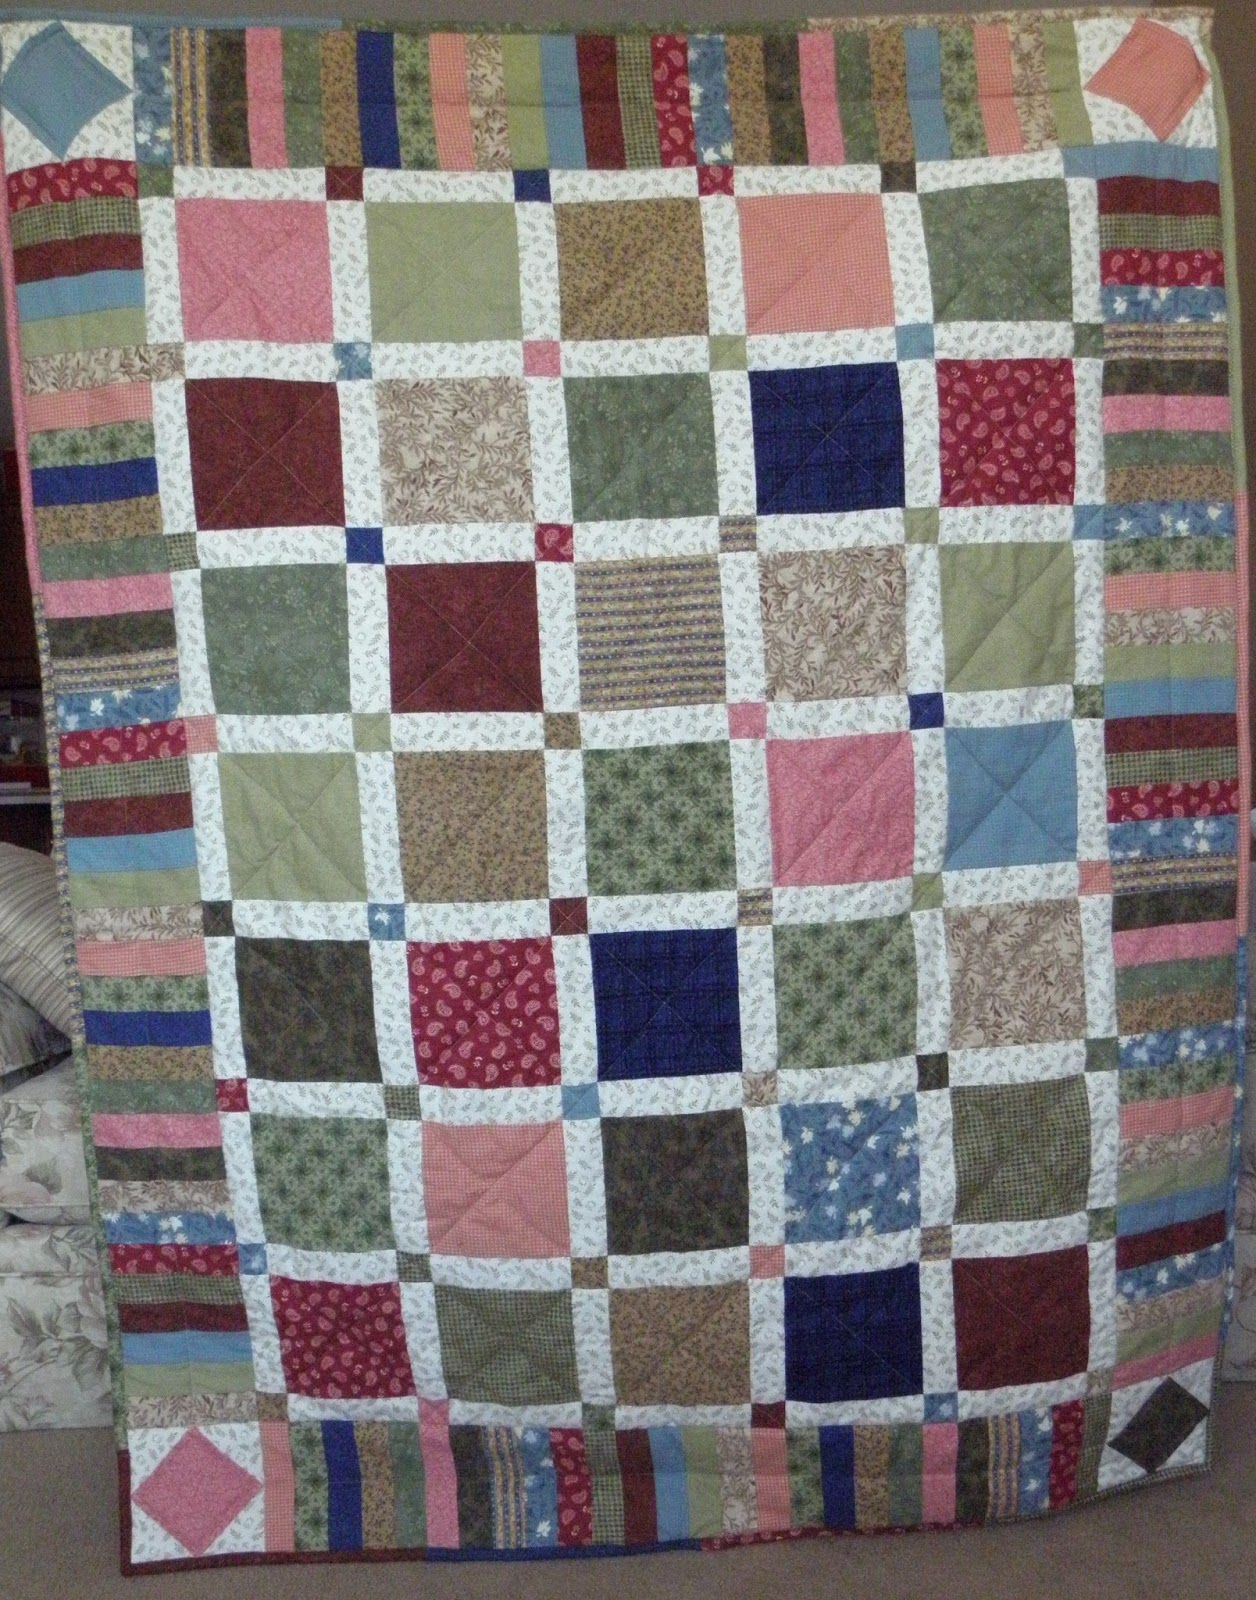 Quilt Patterns For Flannel : Sewing & Scrapping with Susan: Flannel Squared Flannel Lap Quilt